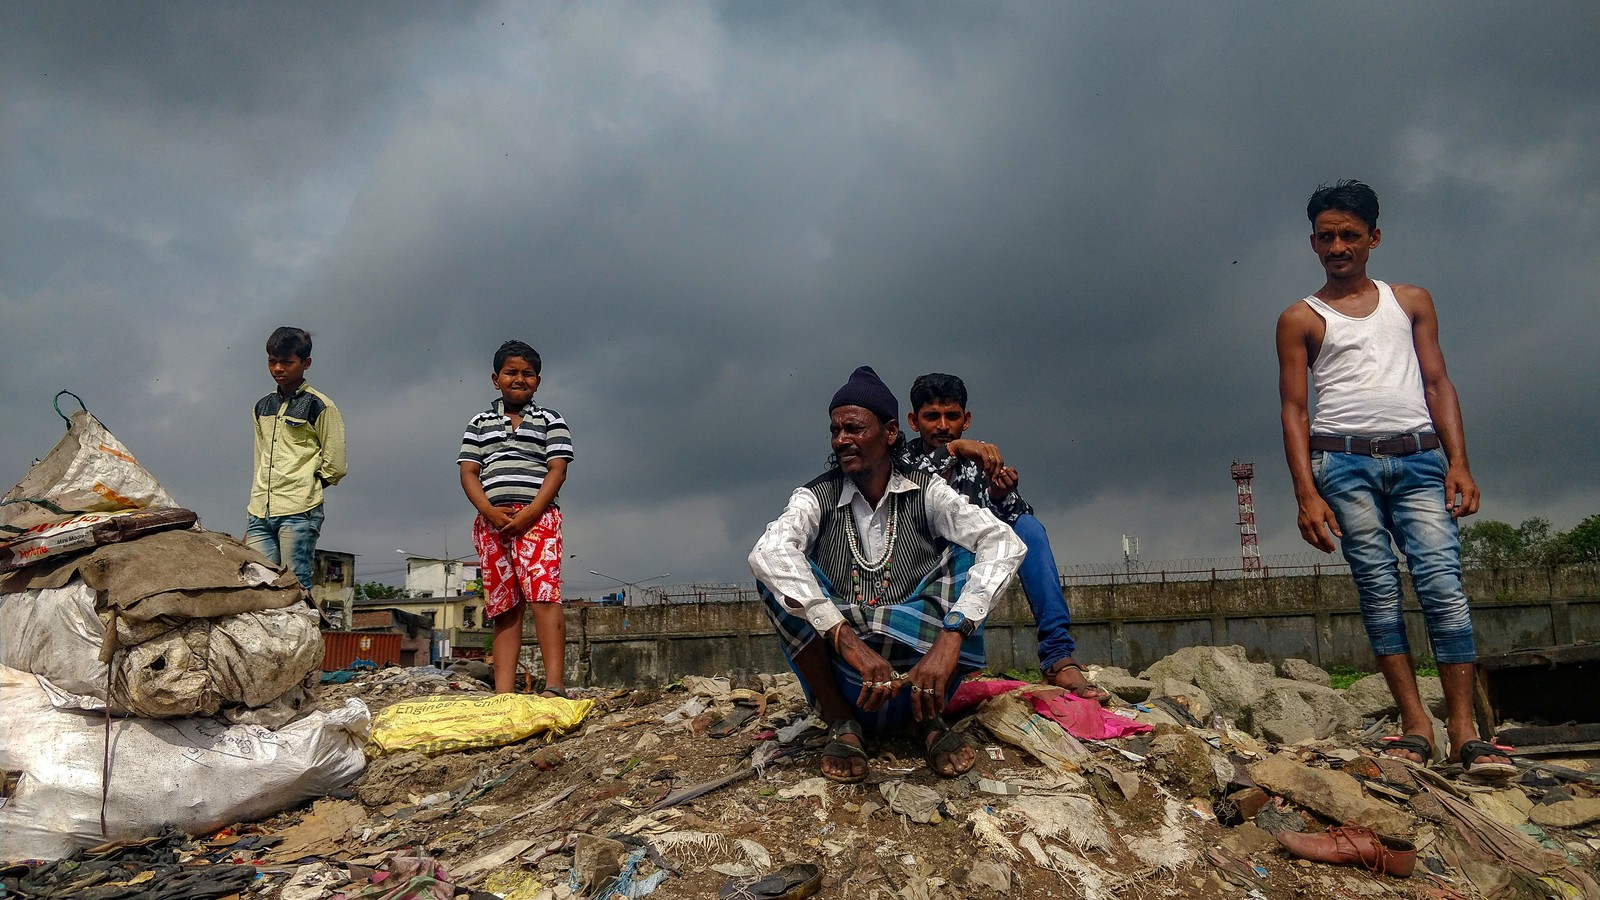 A Look at the Lives of People Separating Waste at One of Asia's Biggest Garbage Dumps